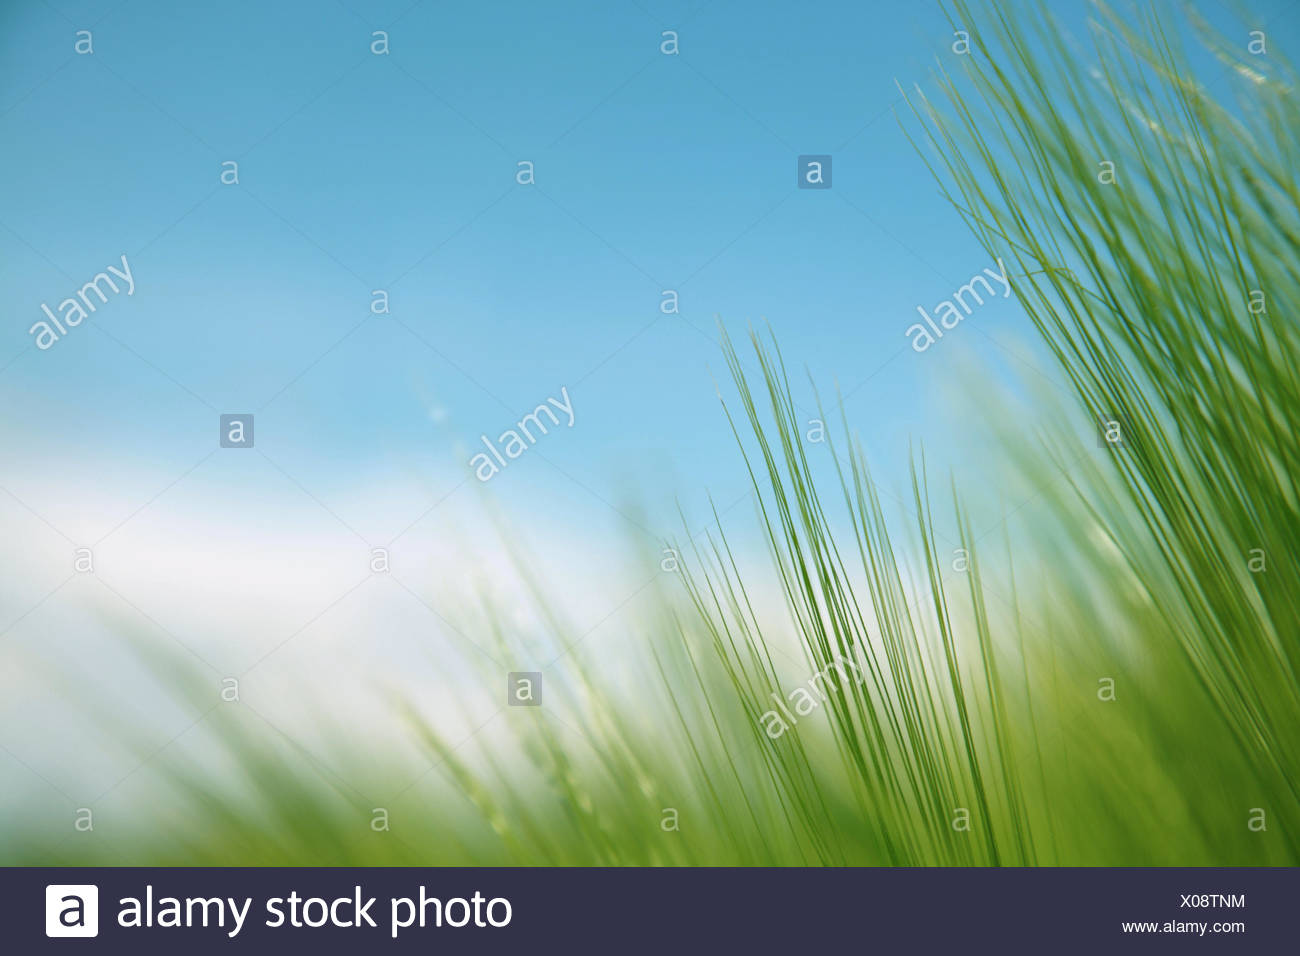 blades of grass against blue sky - Stock Image